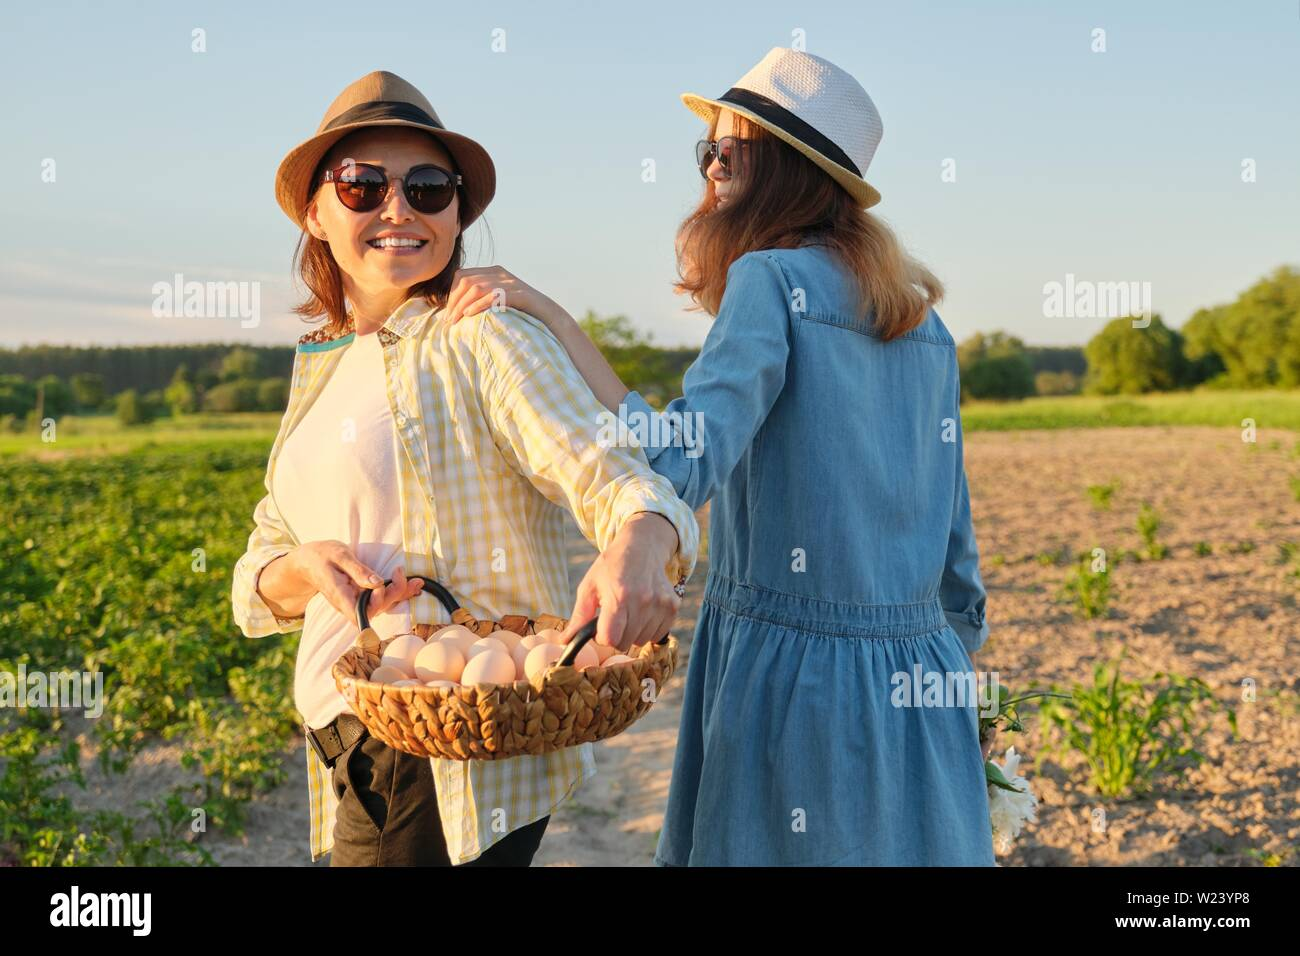 Mother and teen daughter with a basket of fresh eggs in the garden, golden hour. - Stock Image